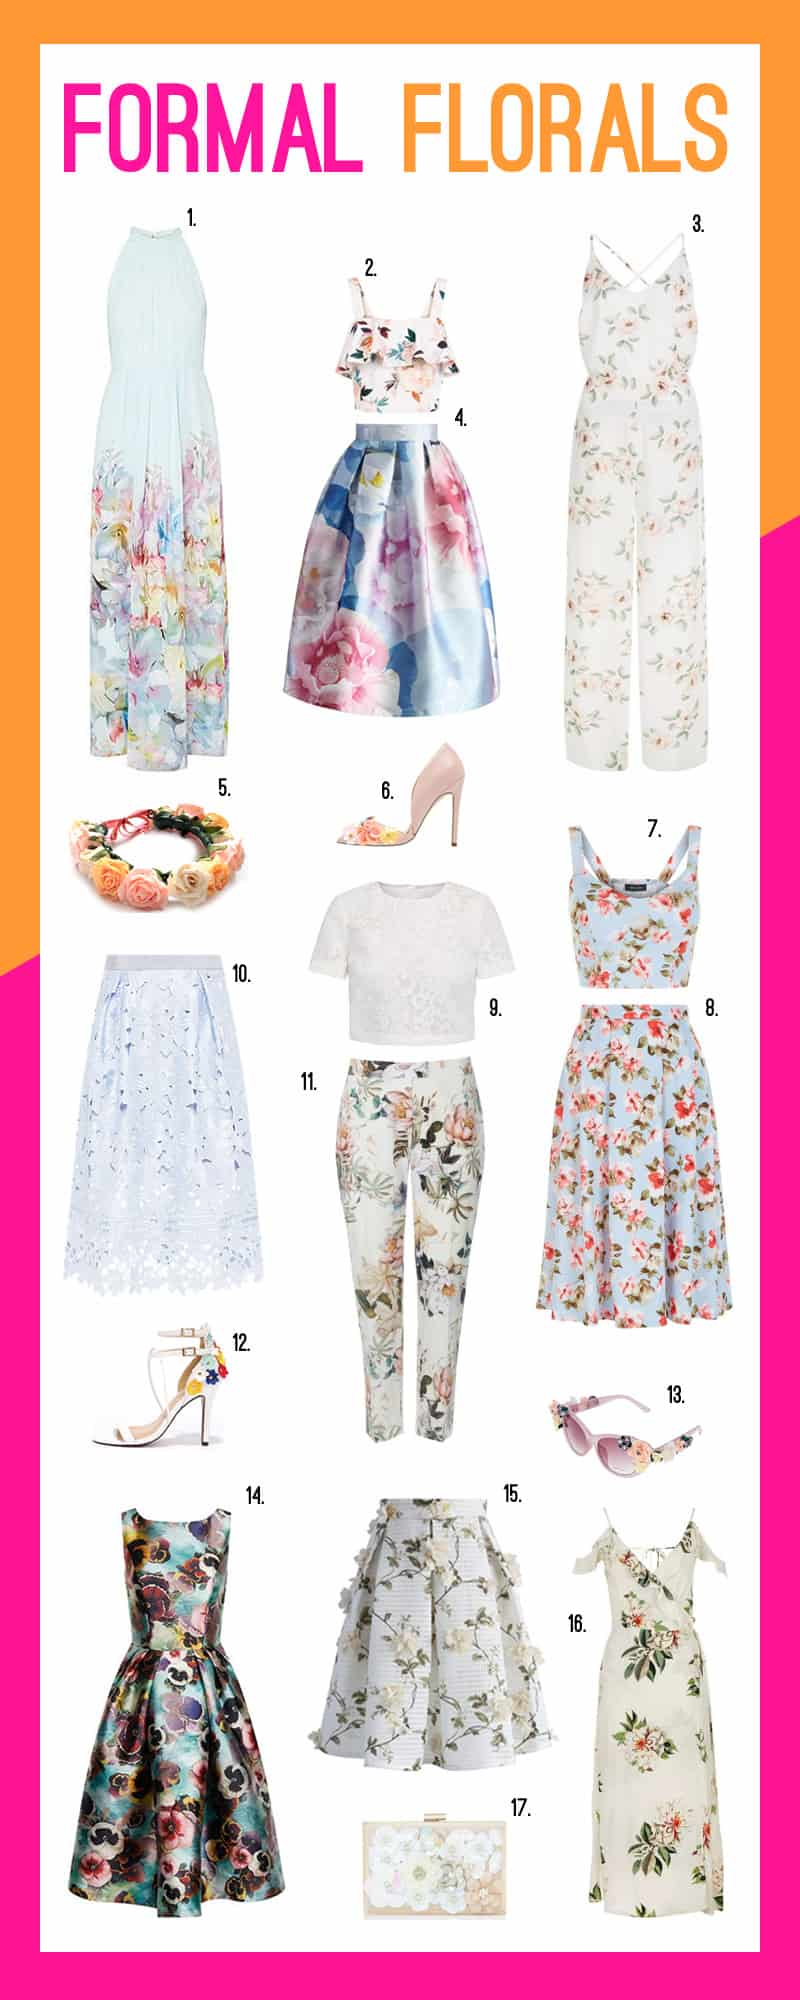 formal florals: 17 floral outfit ideas for a summer wedding